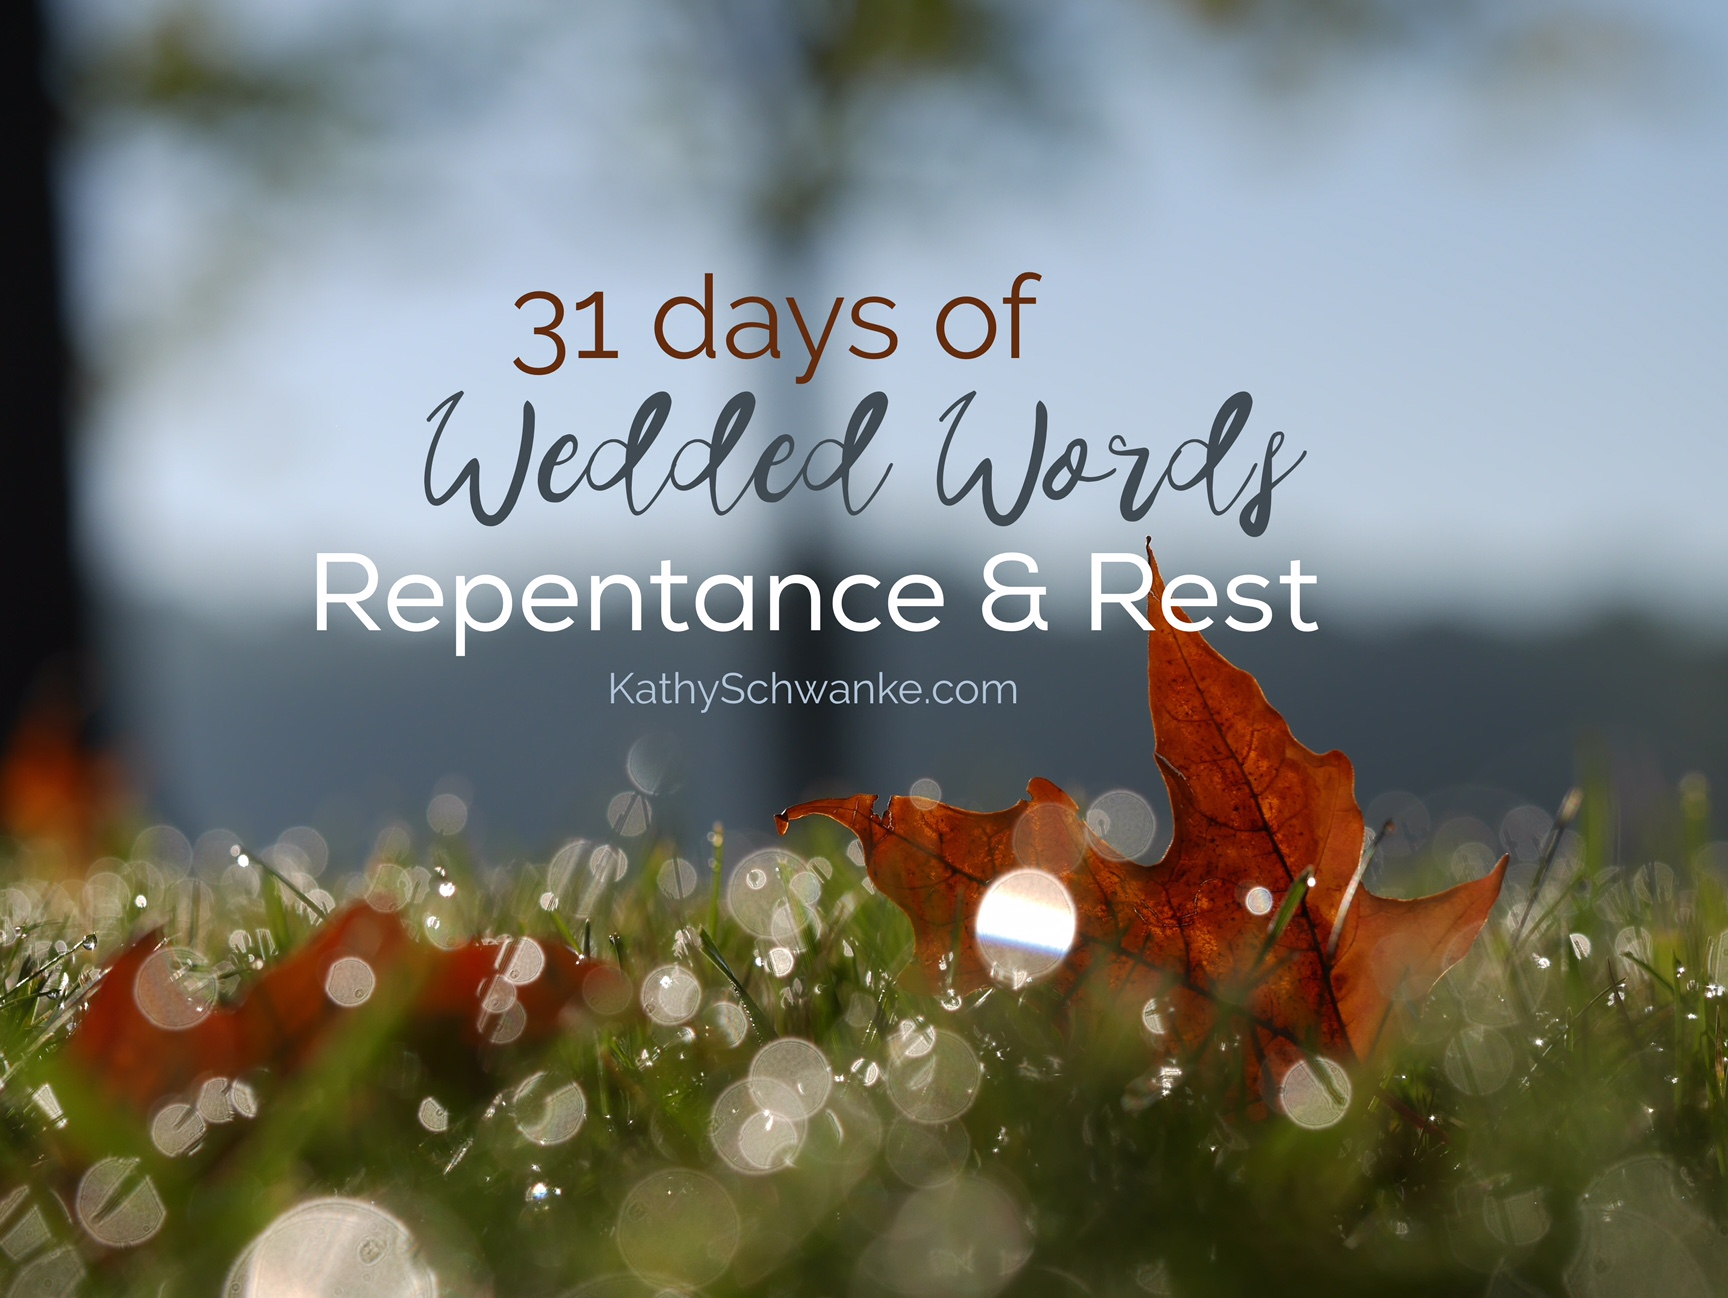 Repentance & Rest: 31 Days of Wedded Words